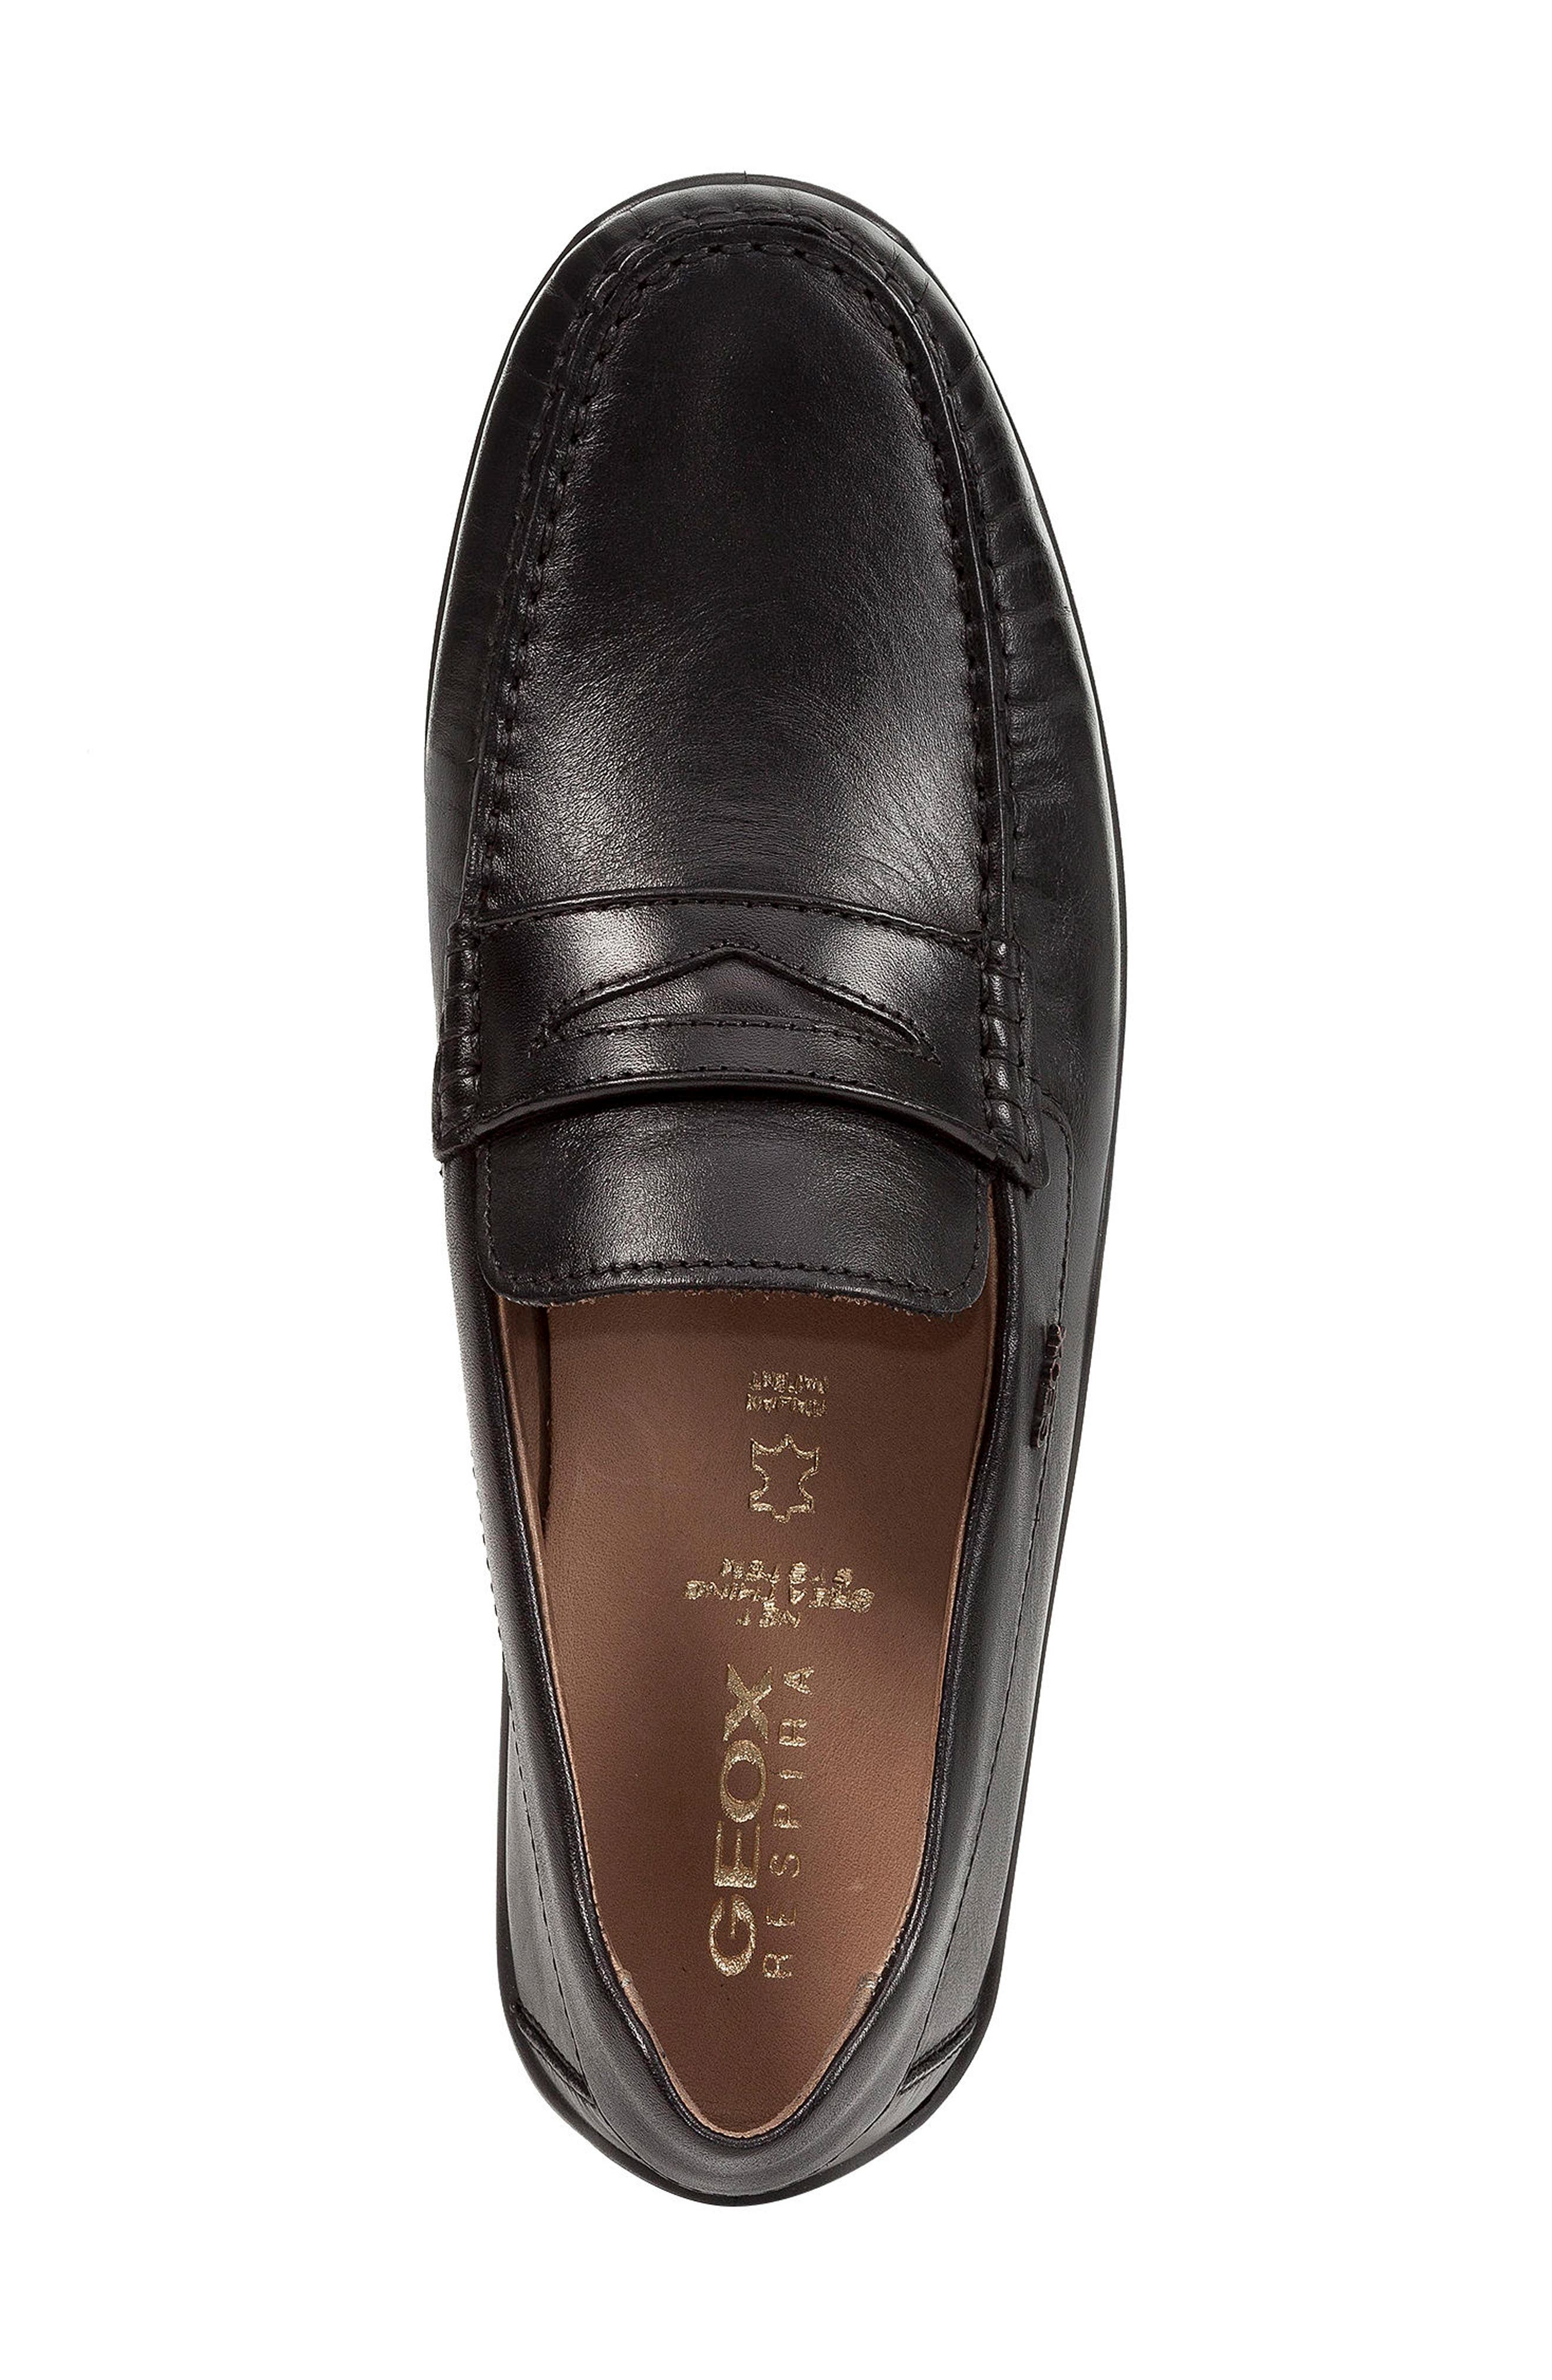 Xense Penny Loafer,                             Alternate thumbnail 6, color,                             Black Leather